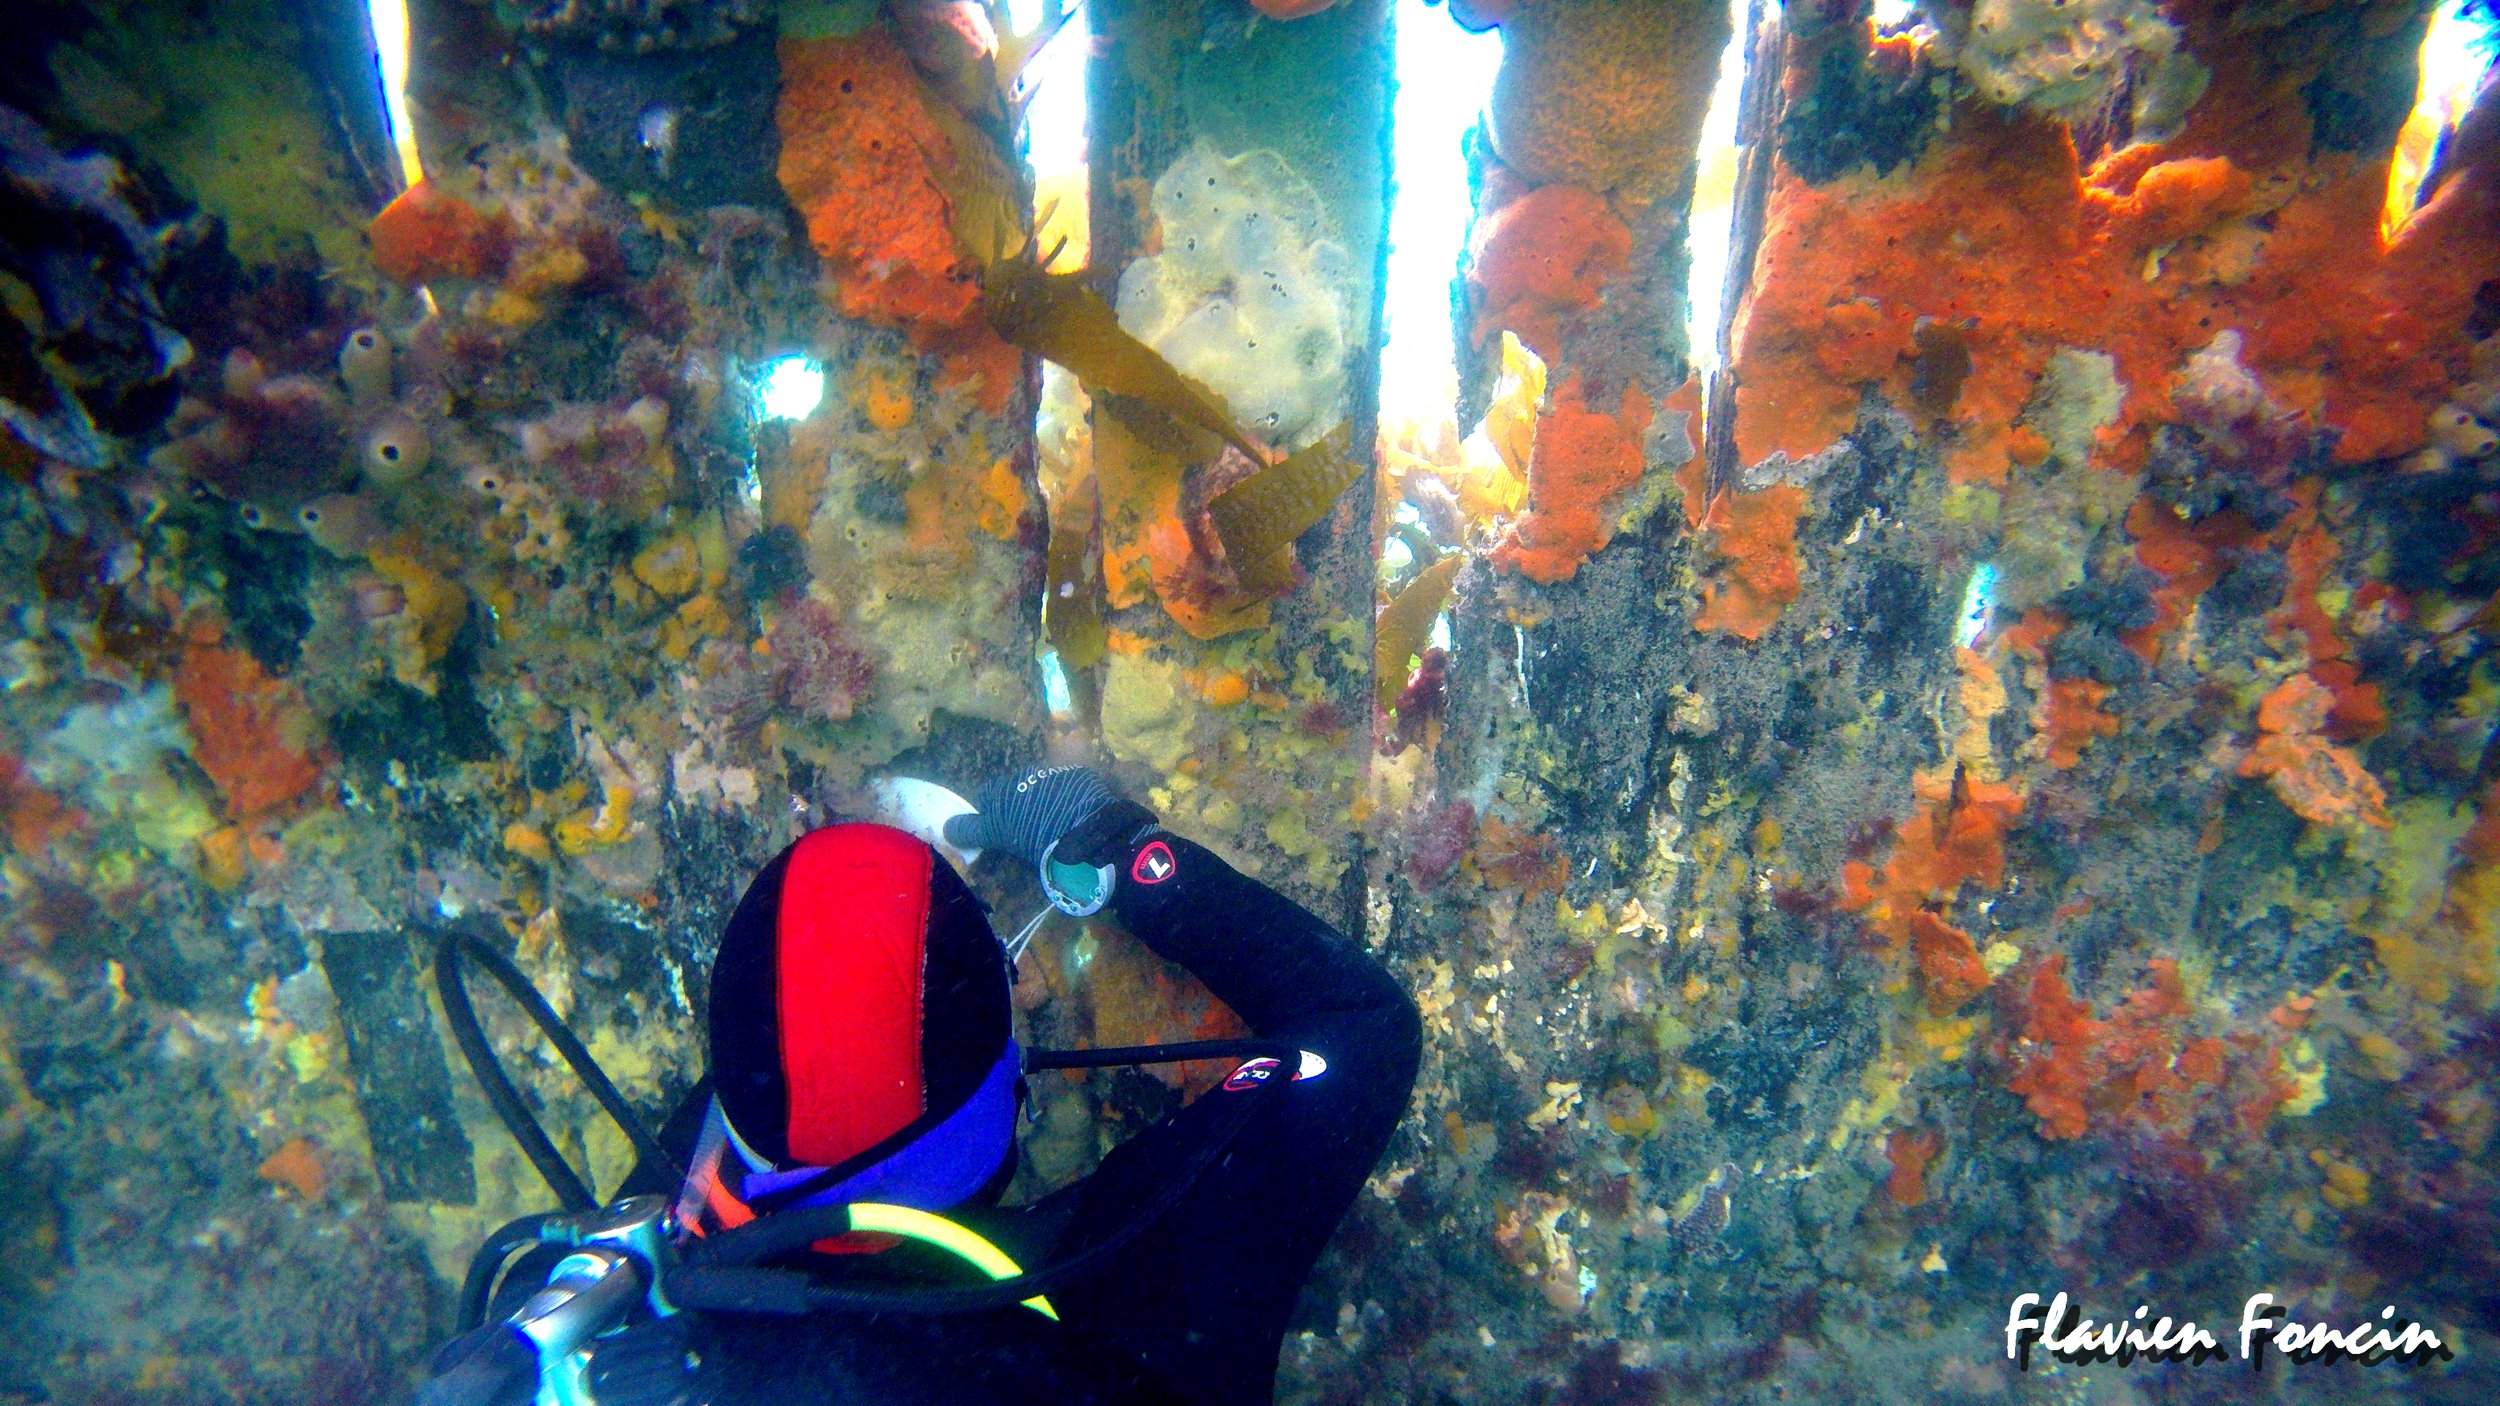 Diver scraping sponges off the old panels for transplanting. Photo credit: Flavien Foncin